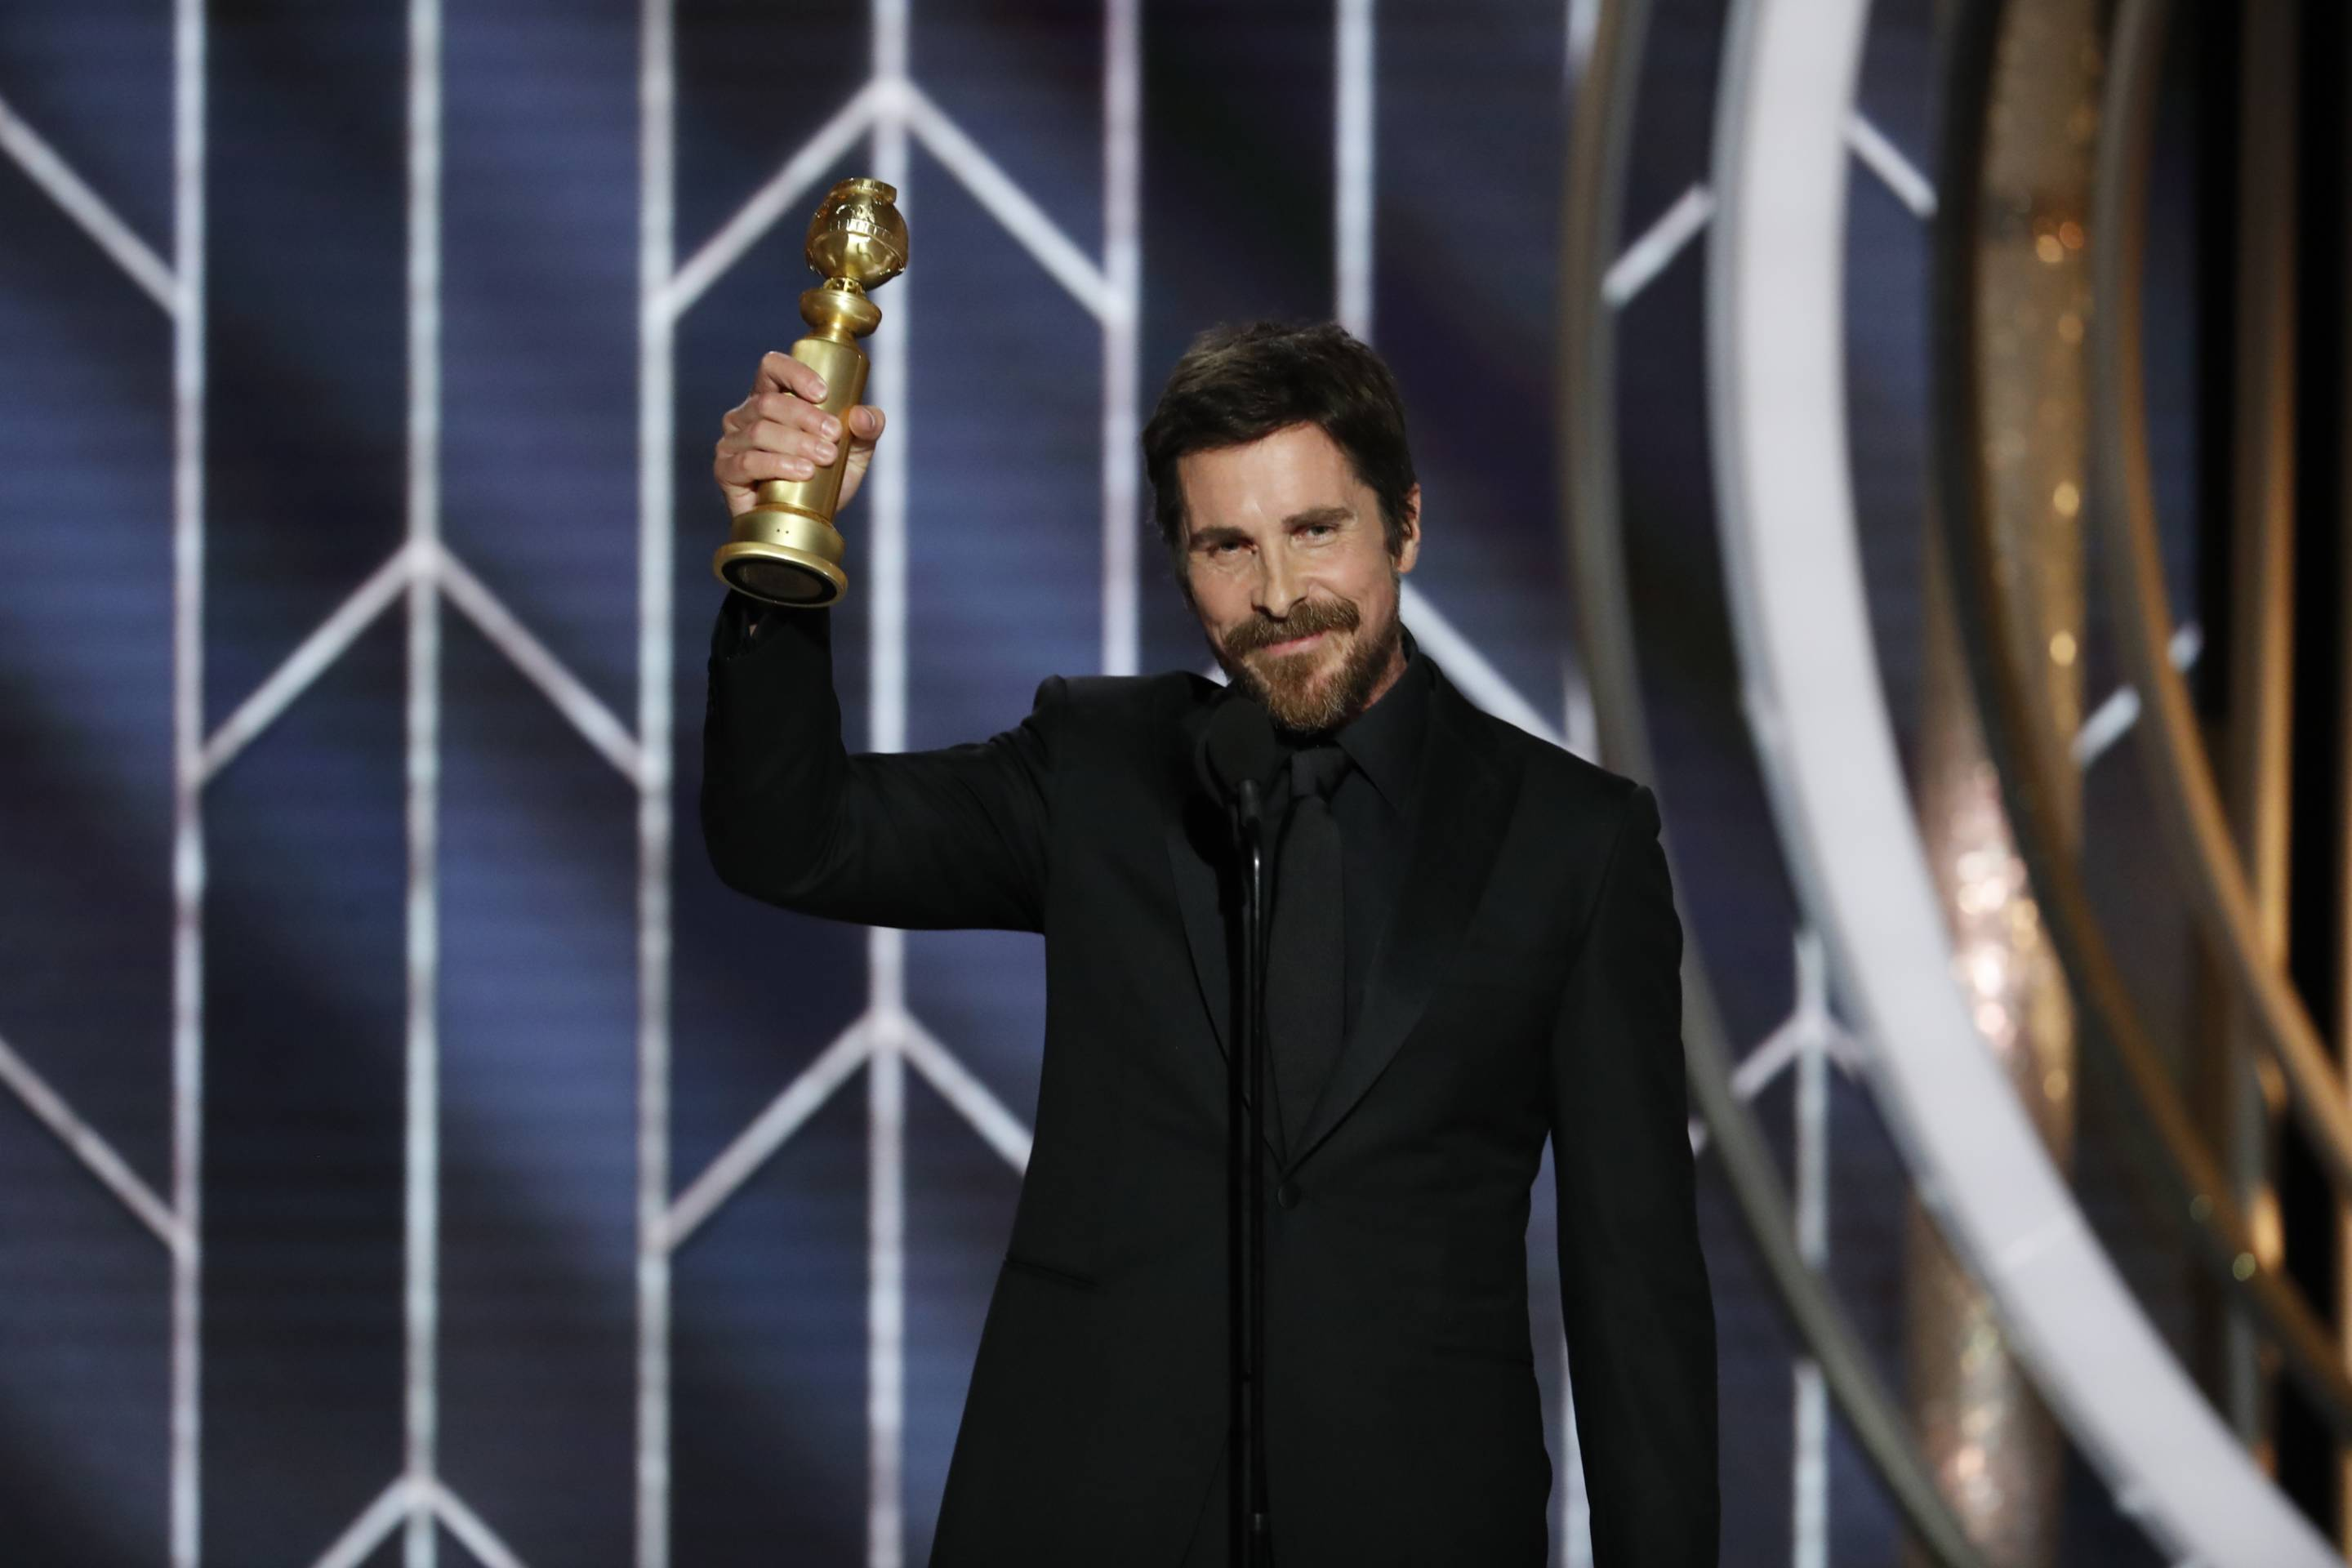 Christian Bale Accepts Best Actor Golden Globe for Vice